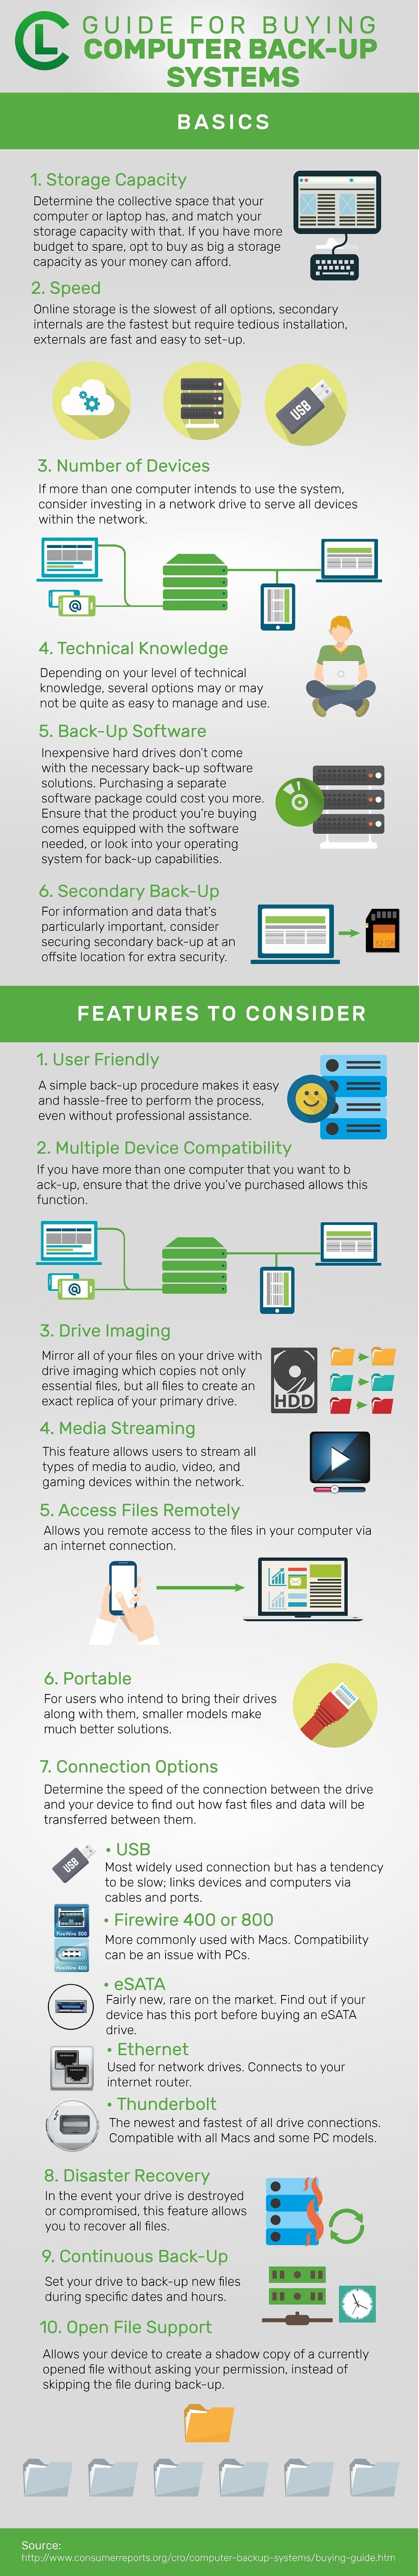 Guide For Buying Computer Backup Systems Infographic